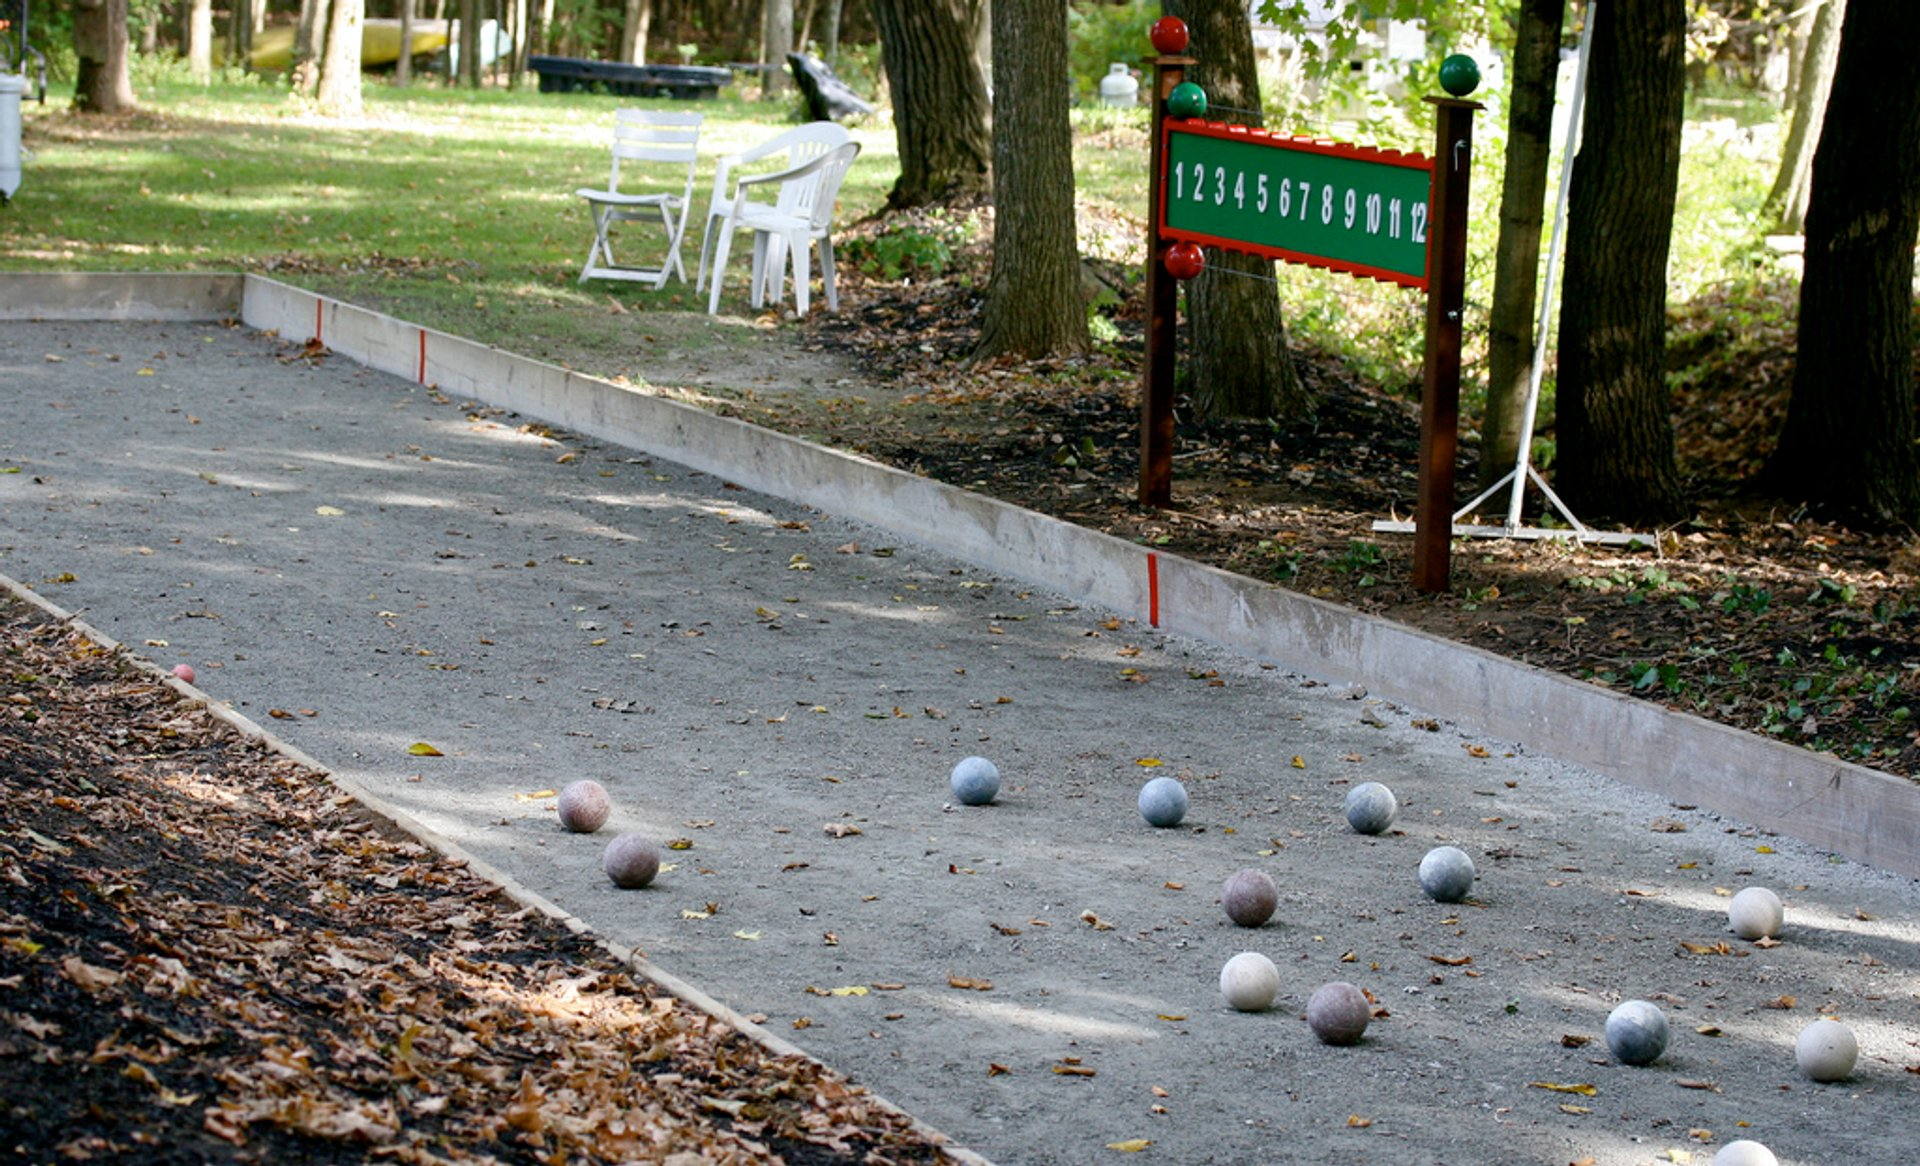 Bocce in Boston - Best Season 2019